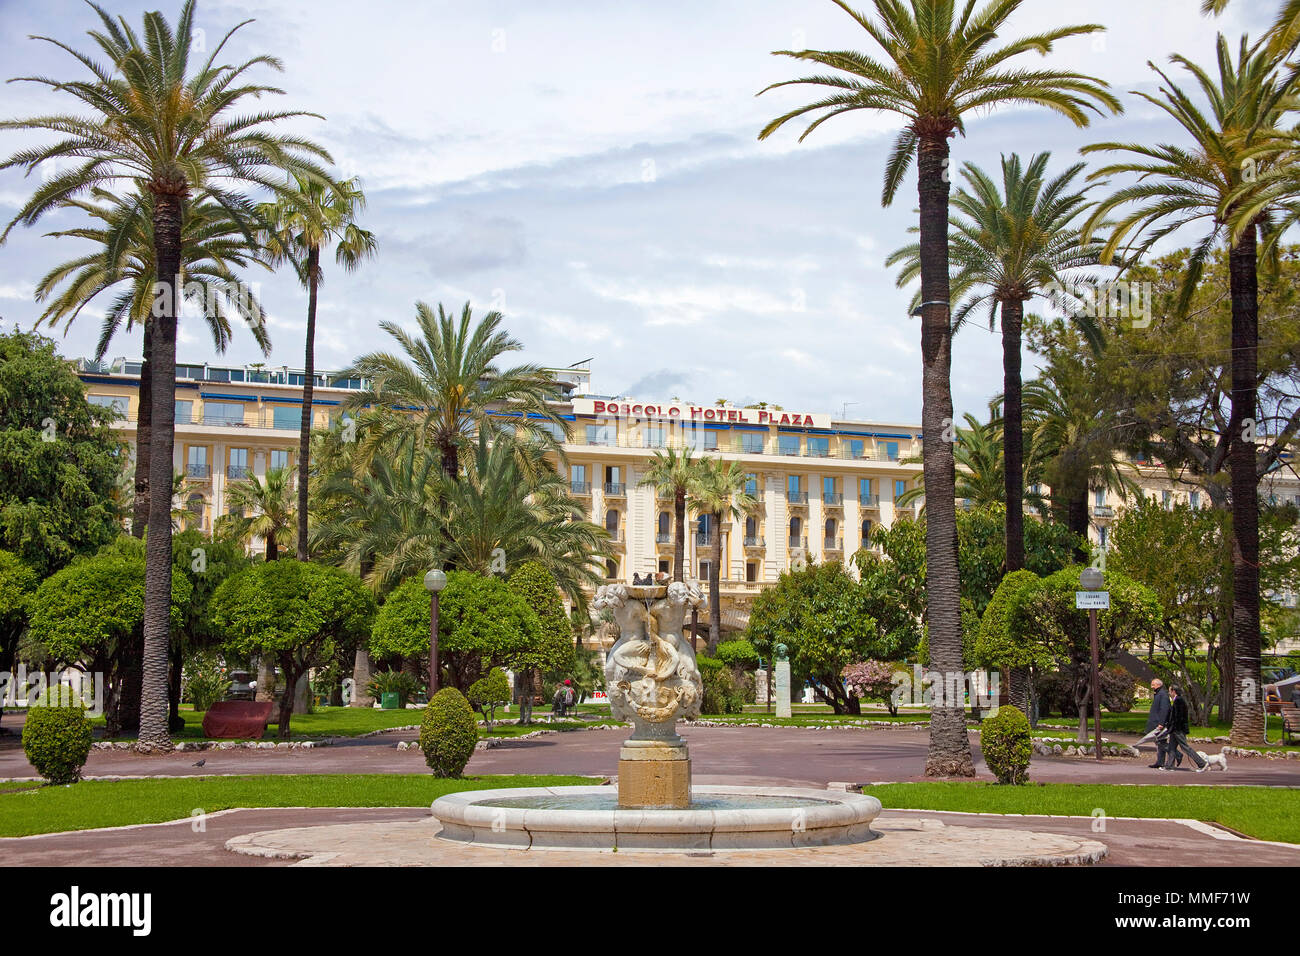 Boscolo Hotel Plaza, luxury hotel at Jardin Albert, Promenade des Anglais, Nice, Côte d'Azur, Alpes-Maritimes, South France, France, Europe Stock Photo